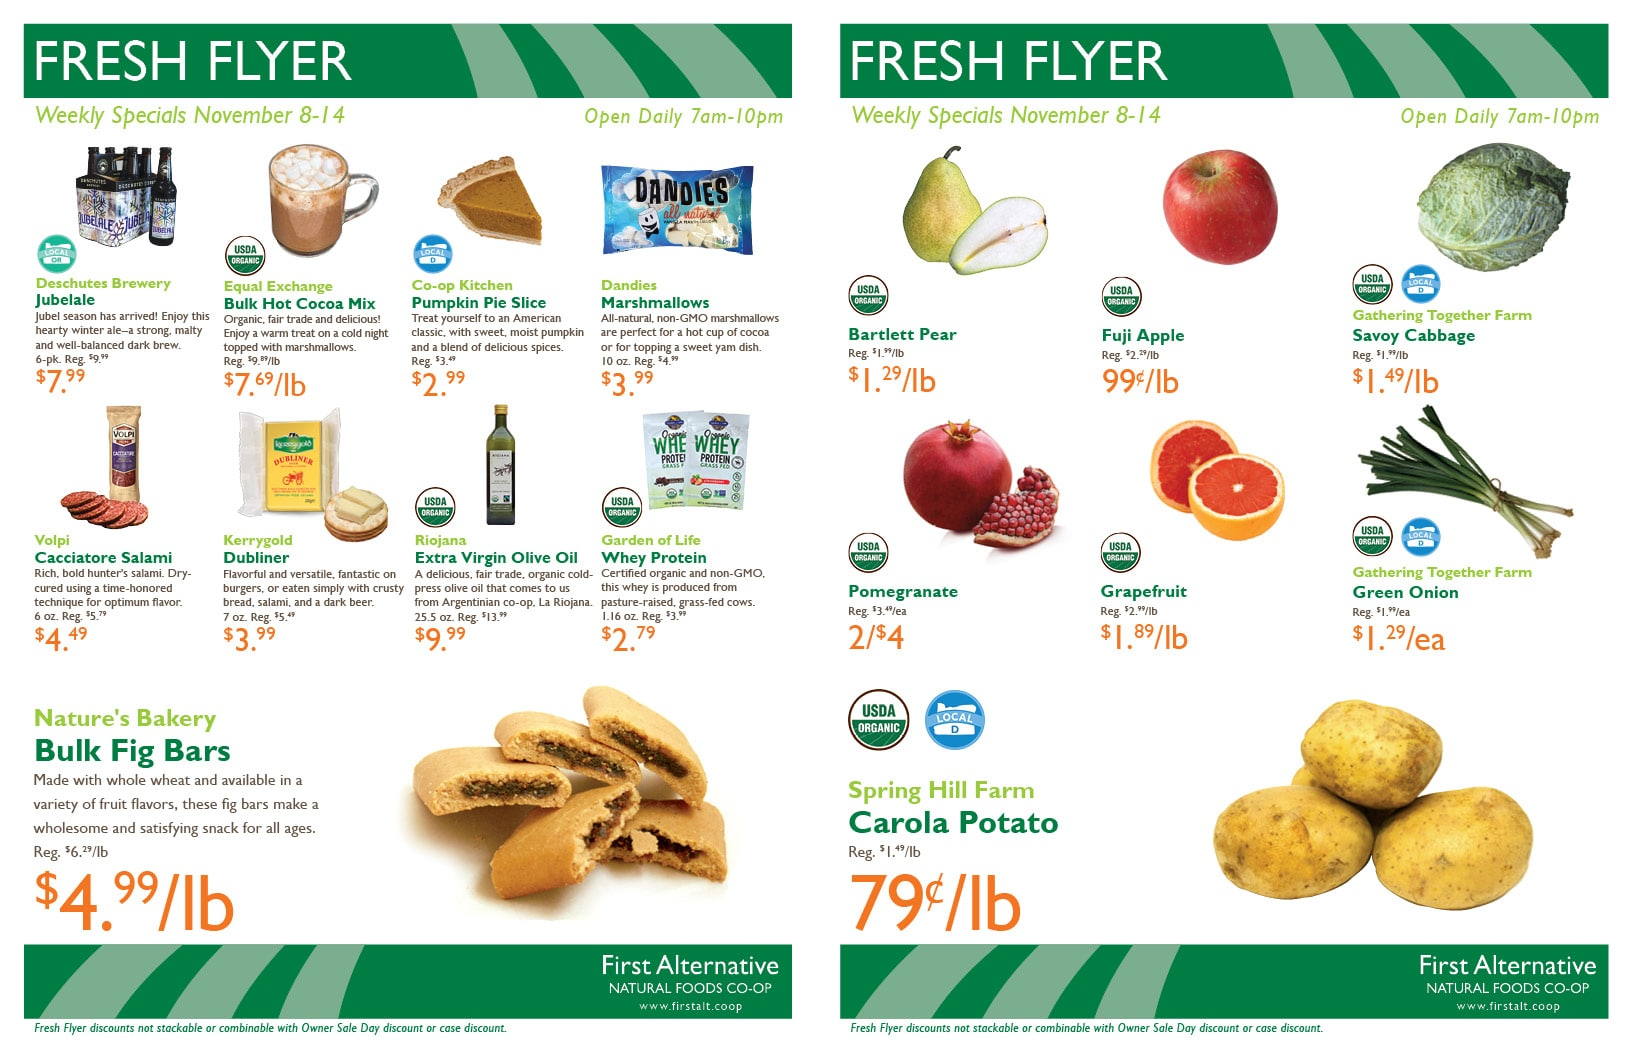 First Alternative Co-op Fresh Flyer November 8-14